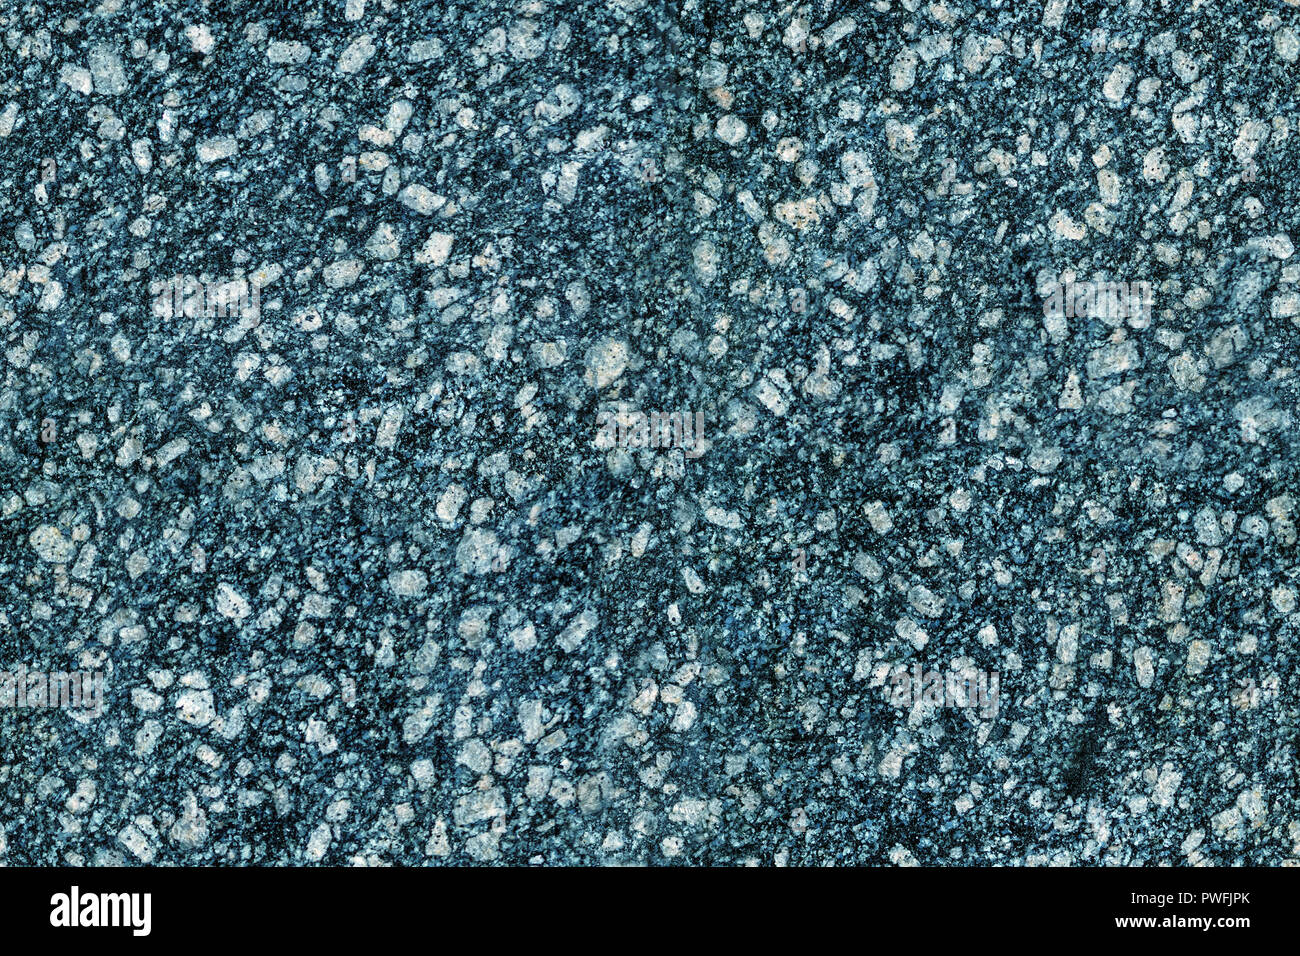 Seamless Marble Tile Natural Texture Of Blue Marble Stock Photo Alamy